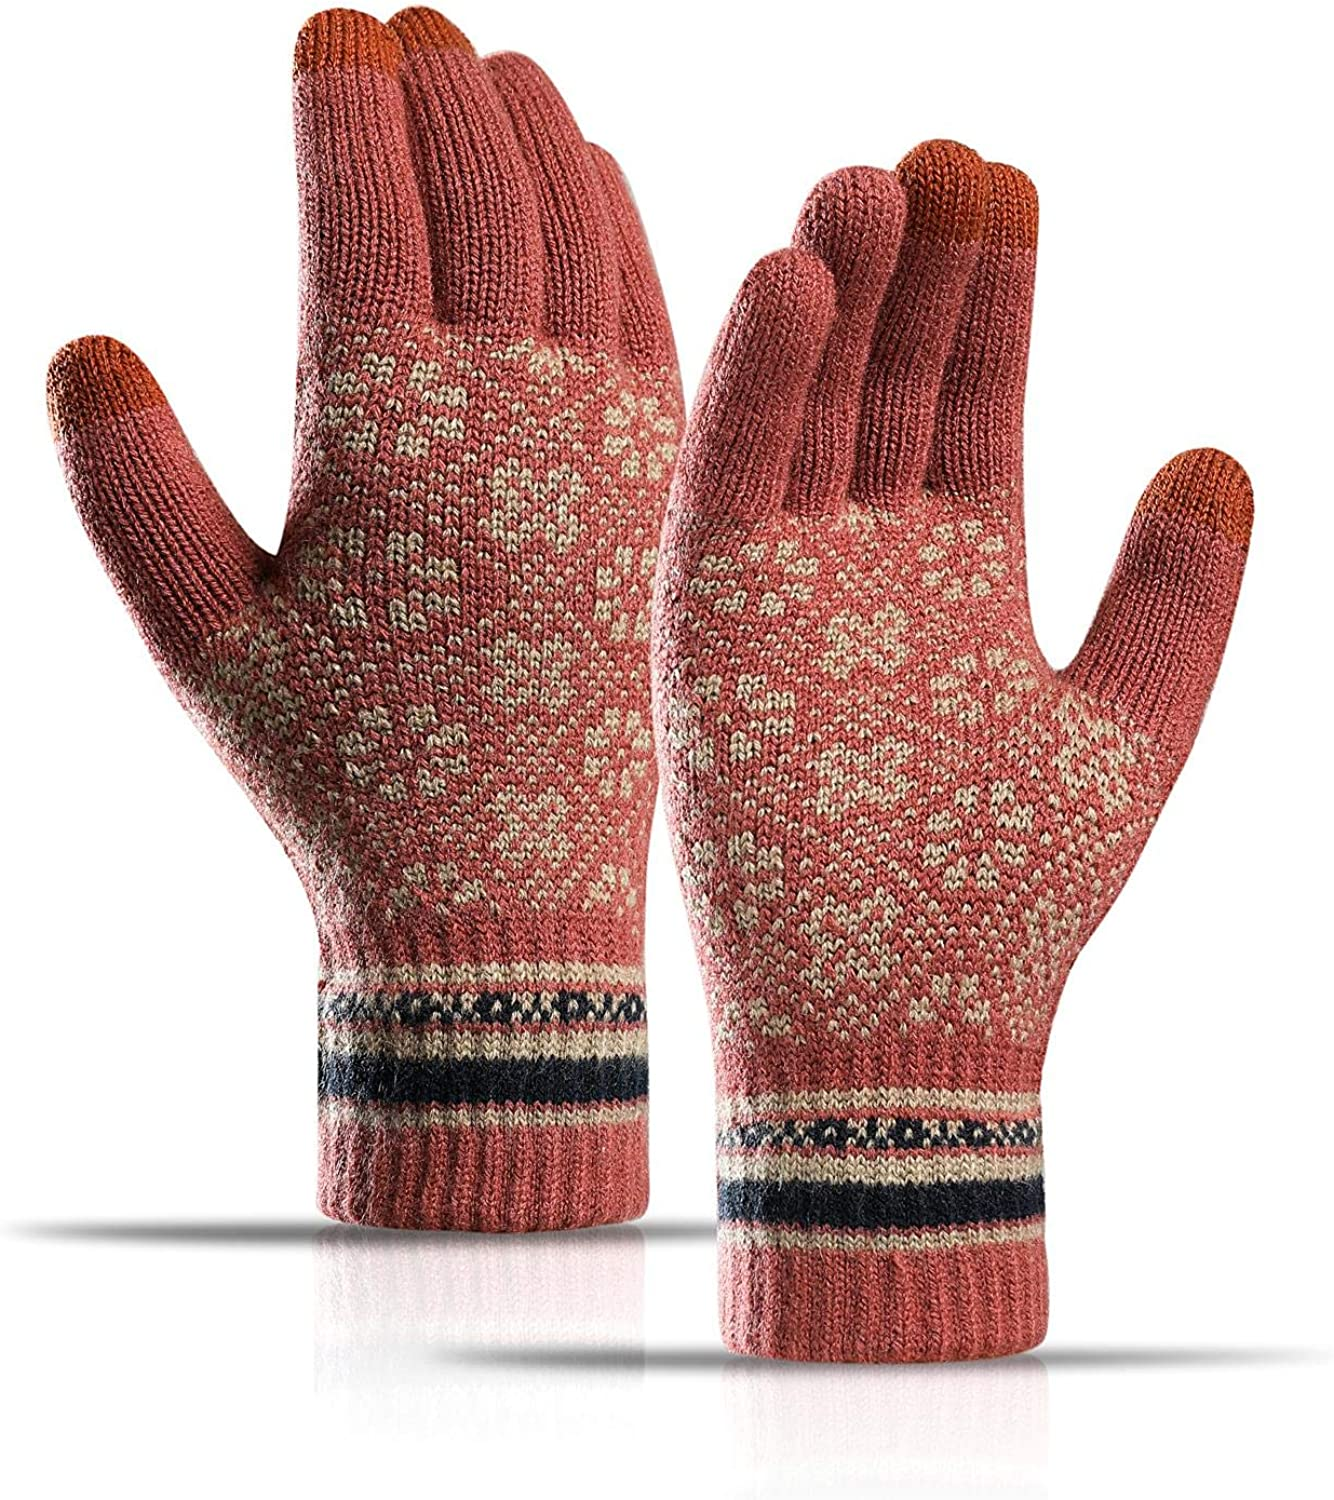 Max 86% OFF Winter Knit Gloves Touchscreen Free Shipping New Snow Warm Pattern Thermal